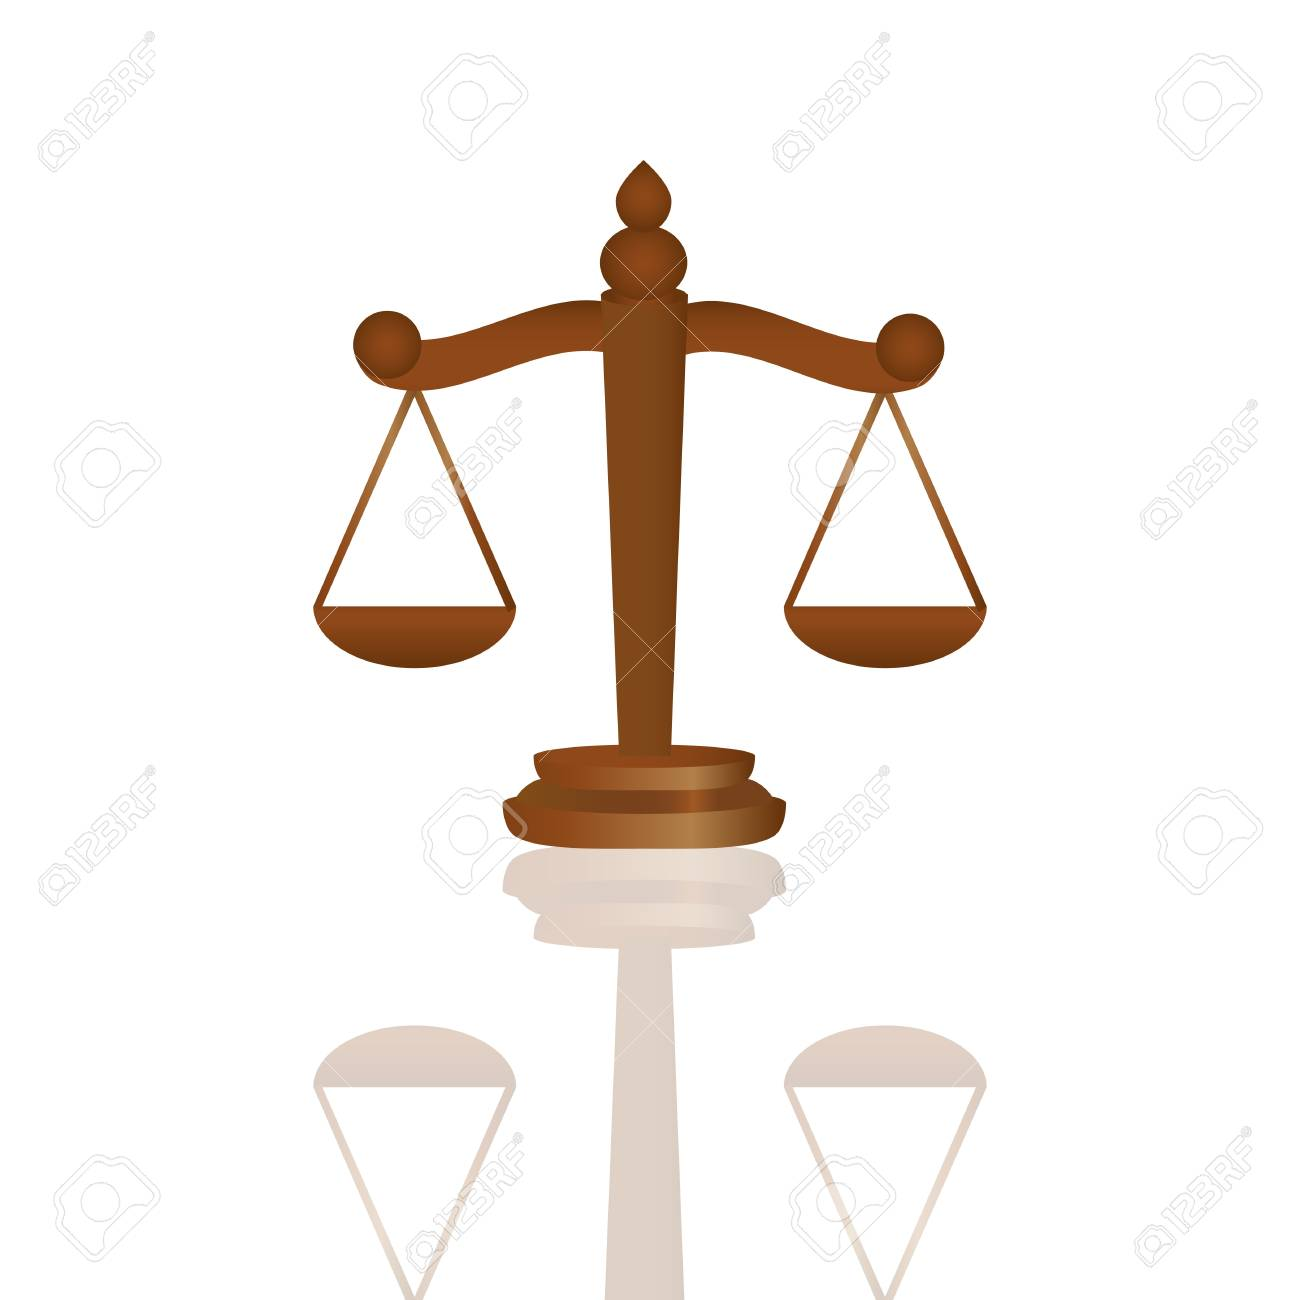 Scales of Justice Stock Vector - 16973750